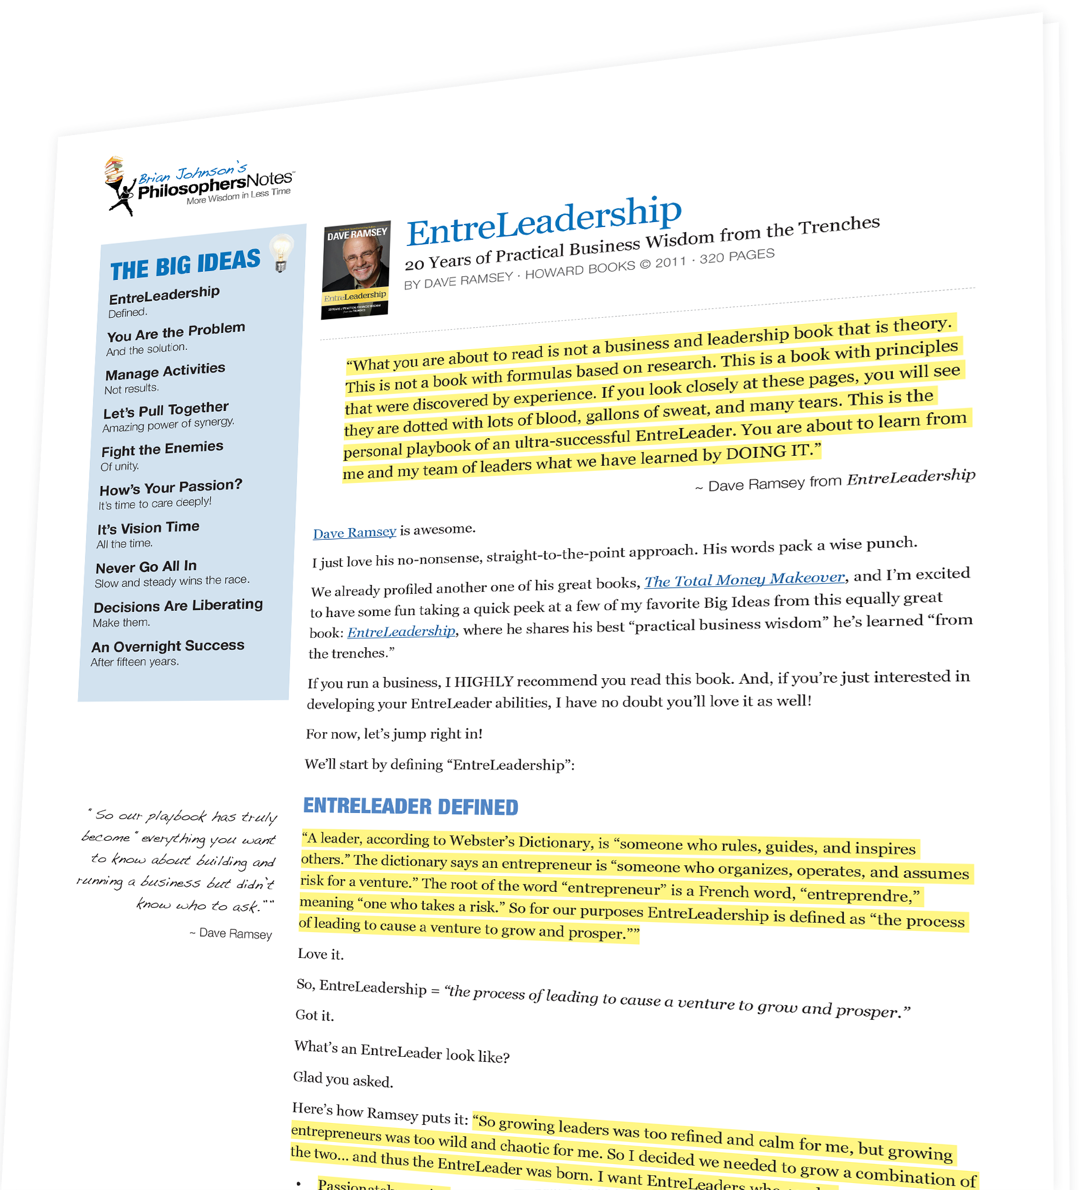 EntreLeadership by Dave Ramsey - PhilosophersNotes | Optimize